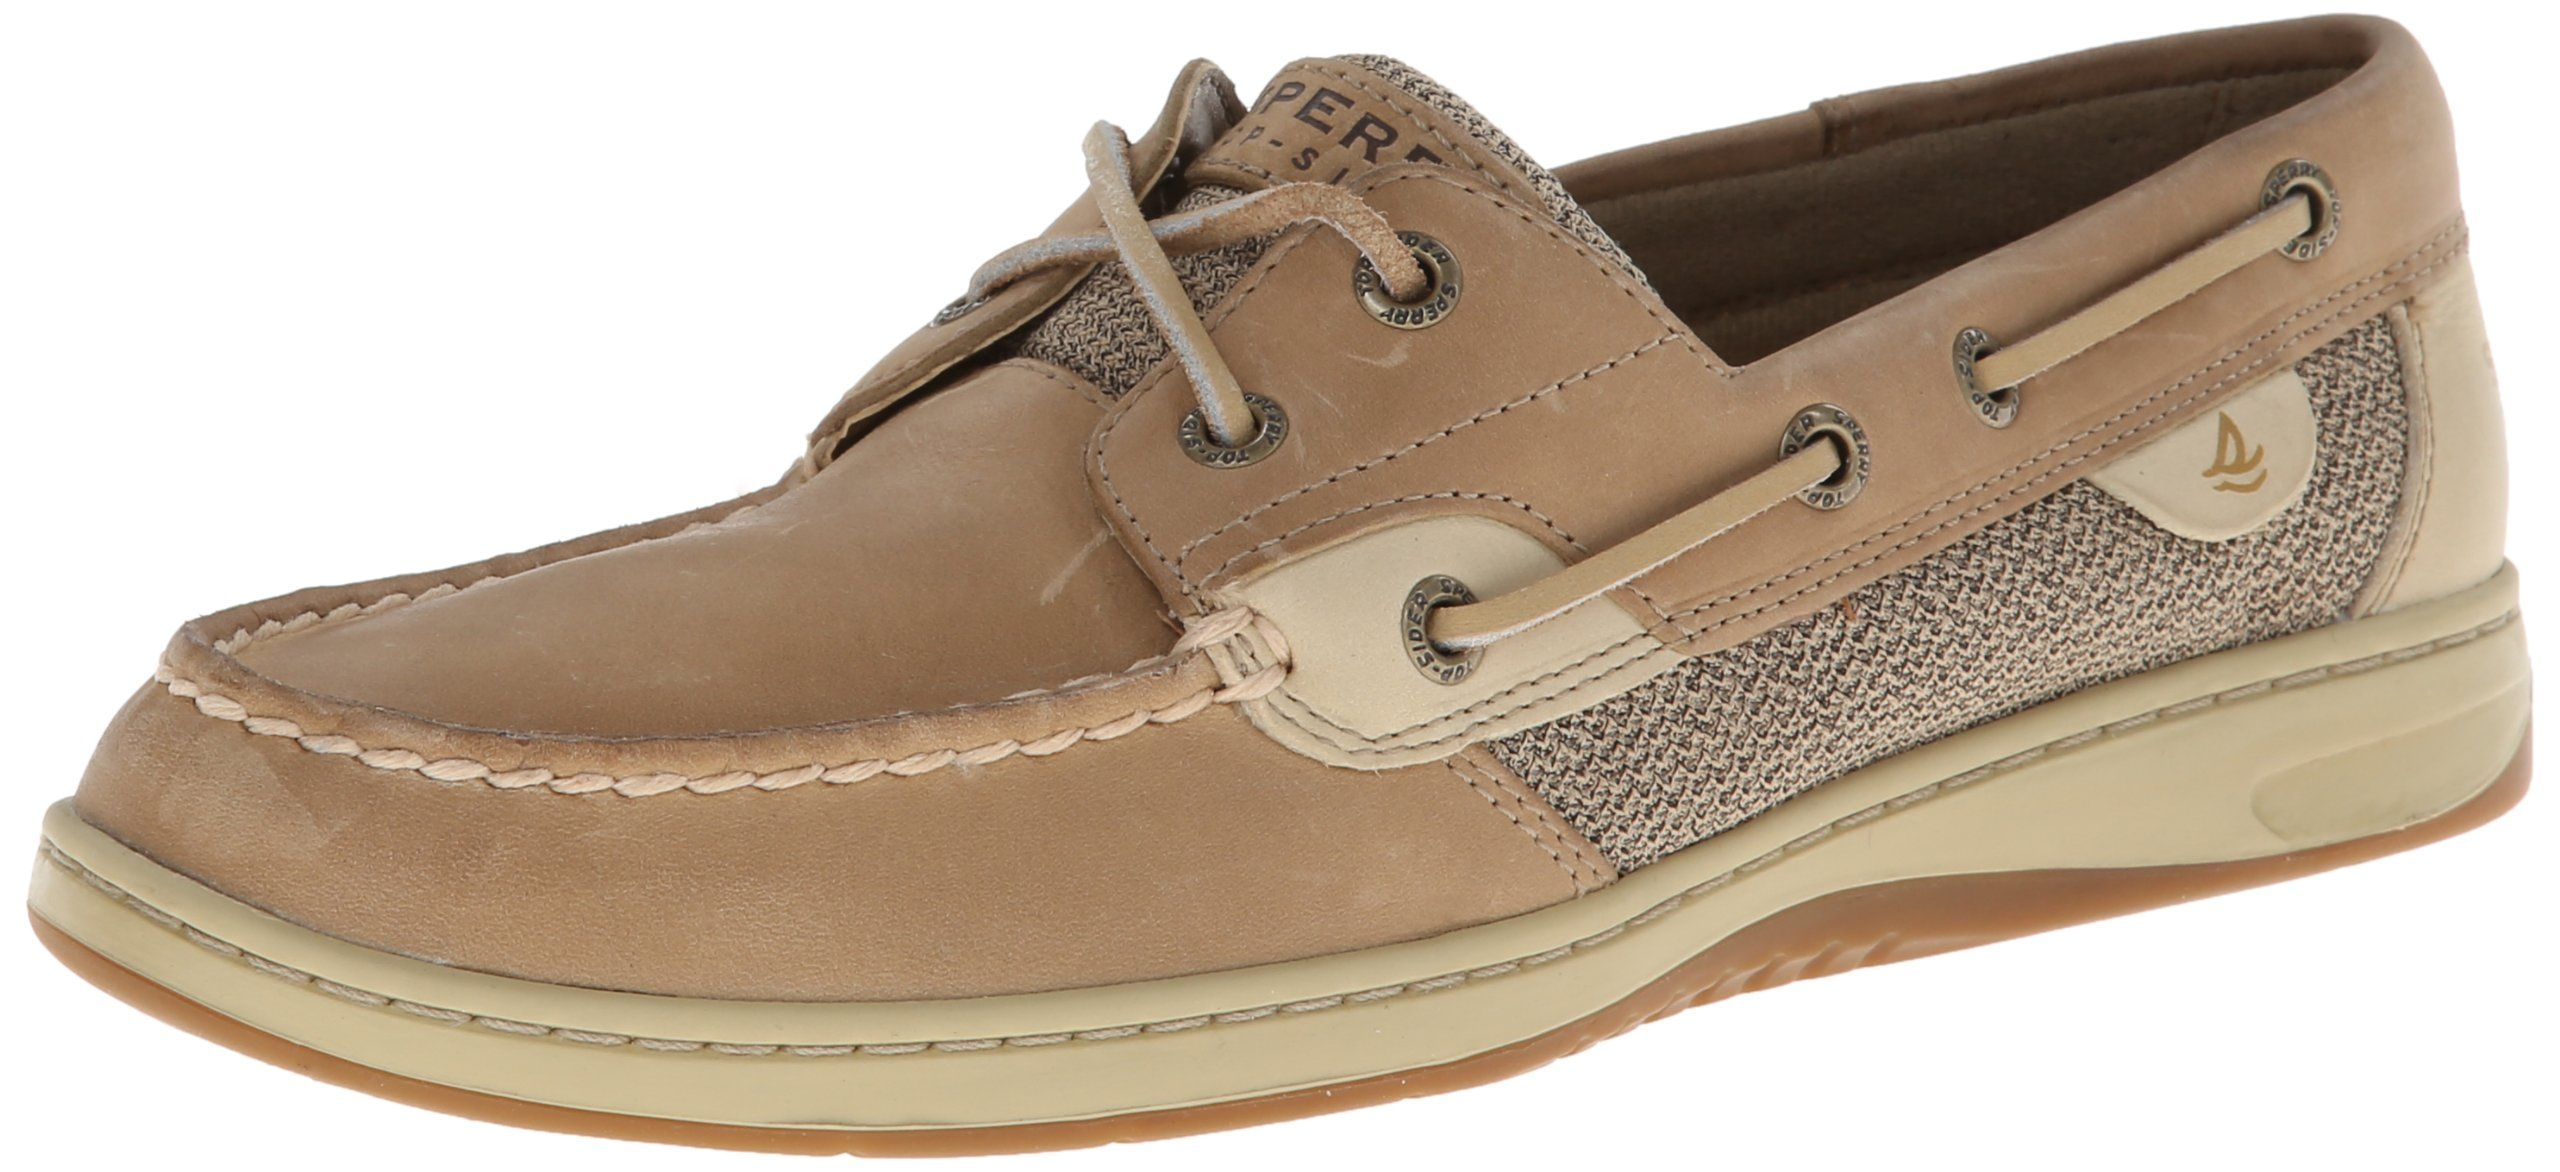 f273f41984728 Amazon.com: Sperry Top-Sider Women's Bluefish 2 Eye Boat Shoe: Shoes ...